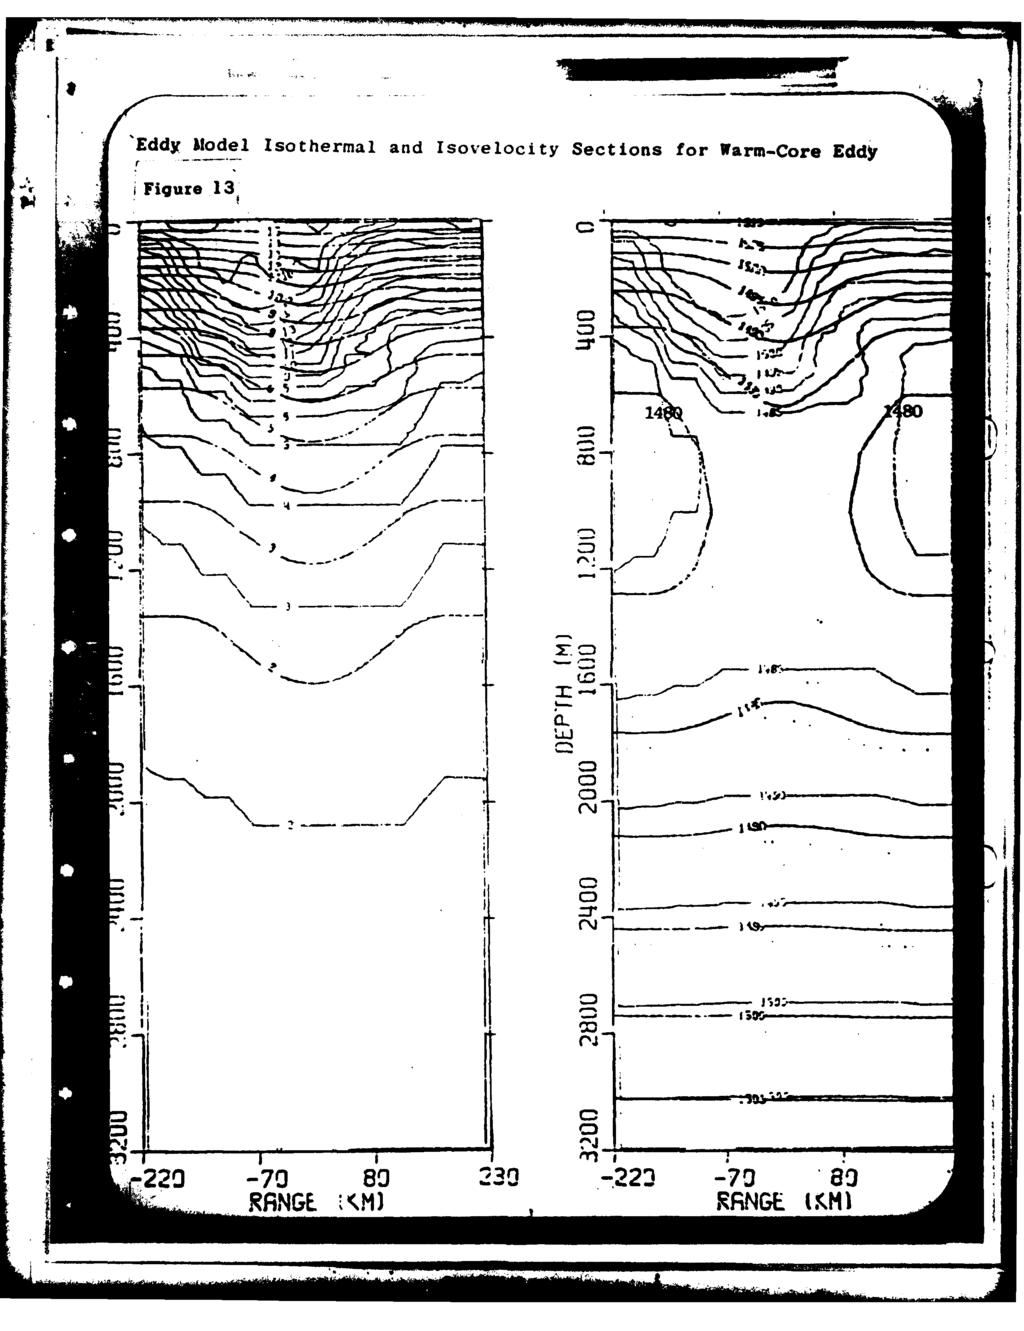 'Eddy Mtodel Isothermal and Isovelocity Sections